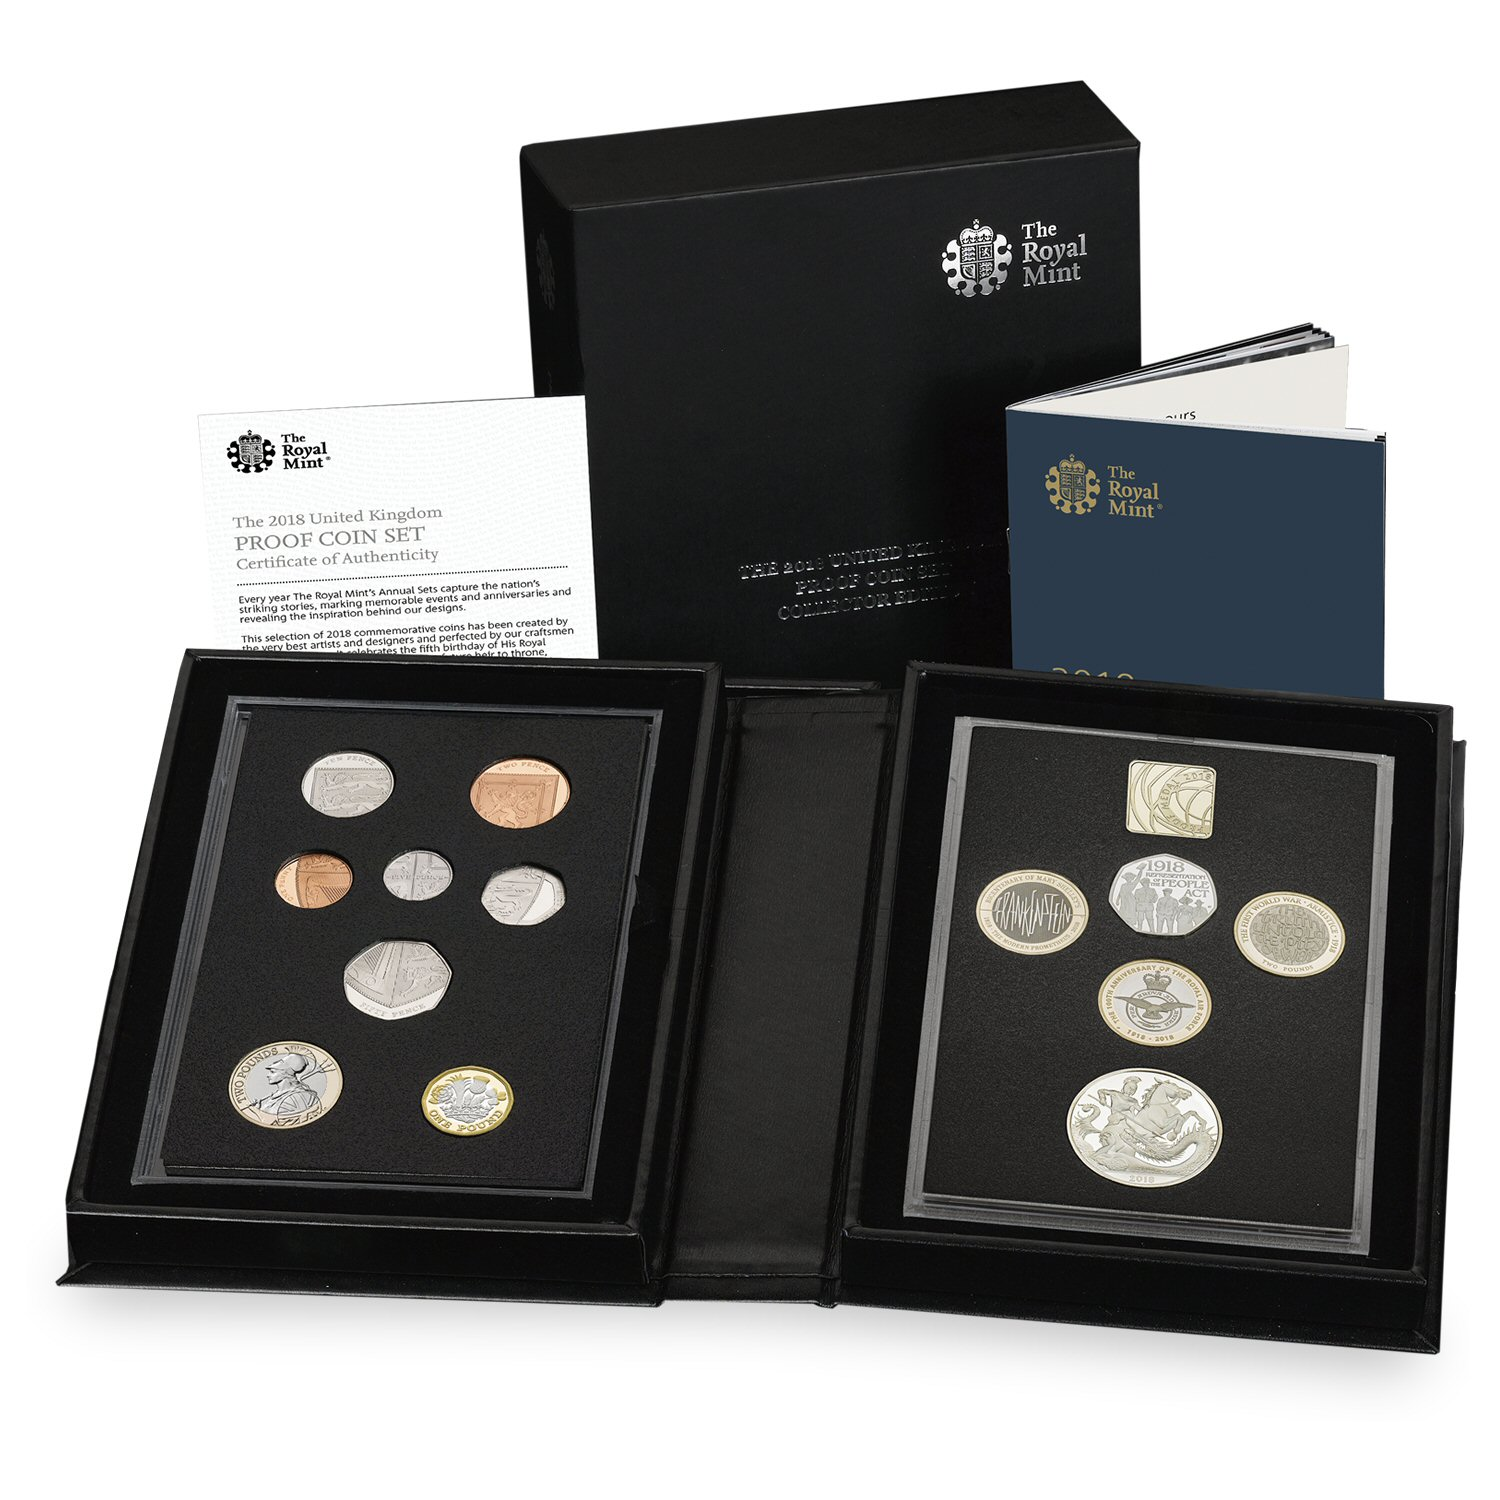 The 2018 UK Proof Coin Set